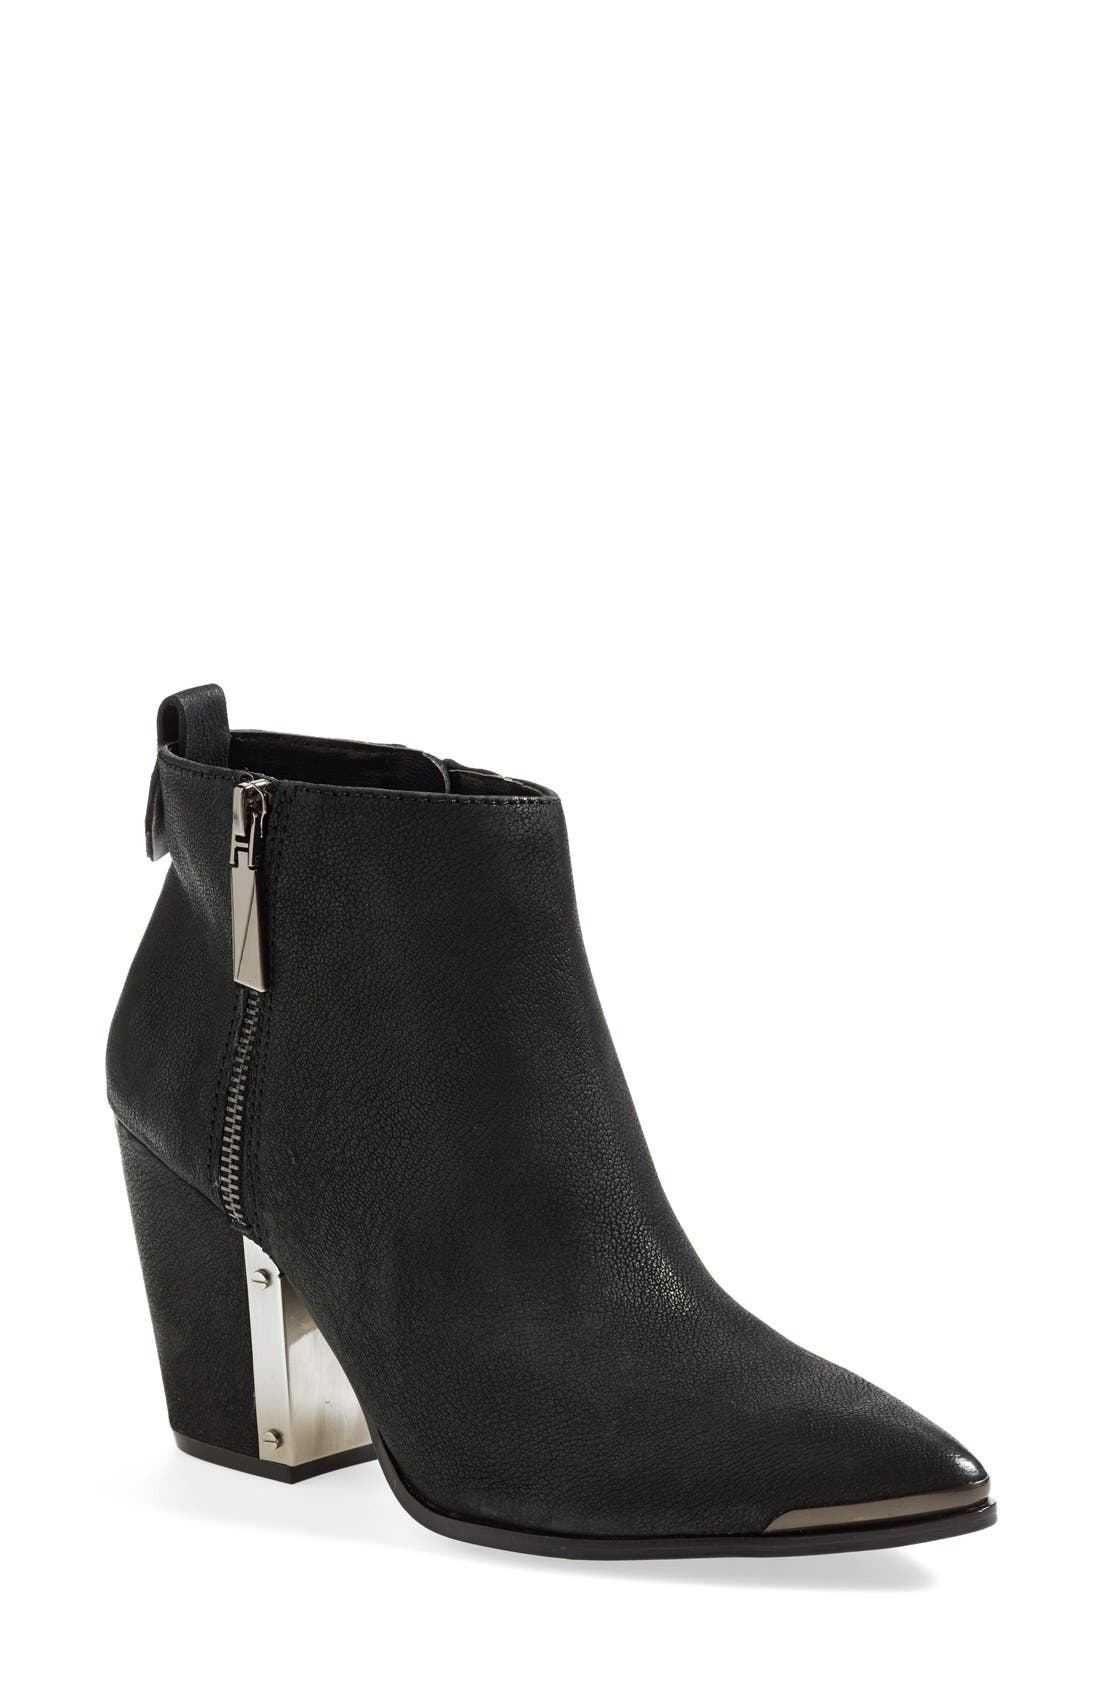 'Amori' Pointy Toe Leather Bootie,                             Main thumbnail 1, color,                             003